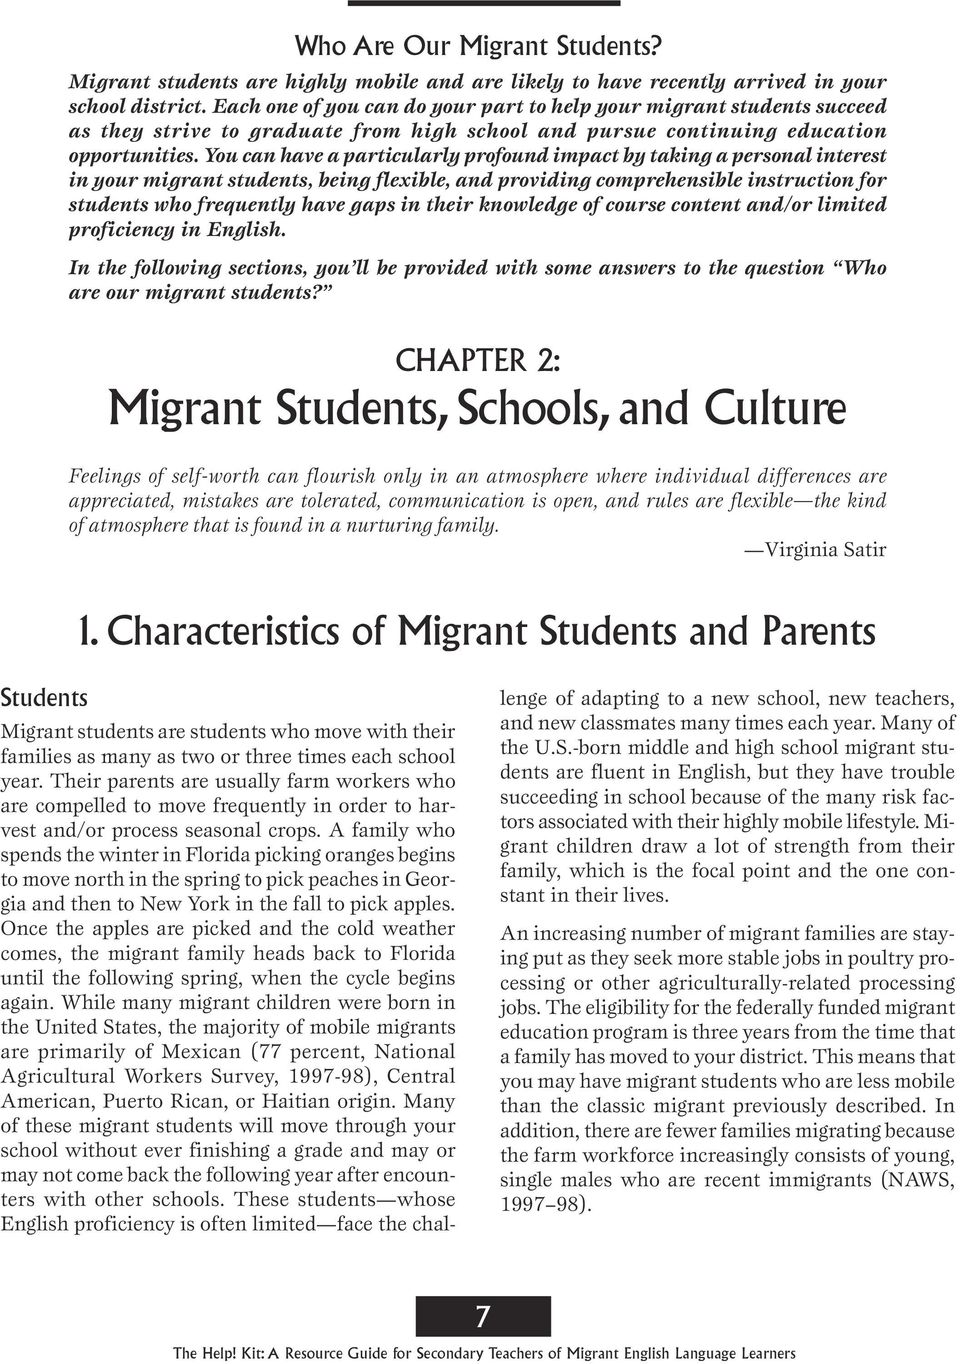 You can have a particularly profound impact by taking a personal interest in your migrant students, being flexible, and providing comprehensible instruction for students who frequently have gaps in